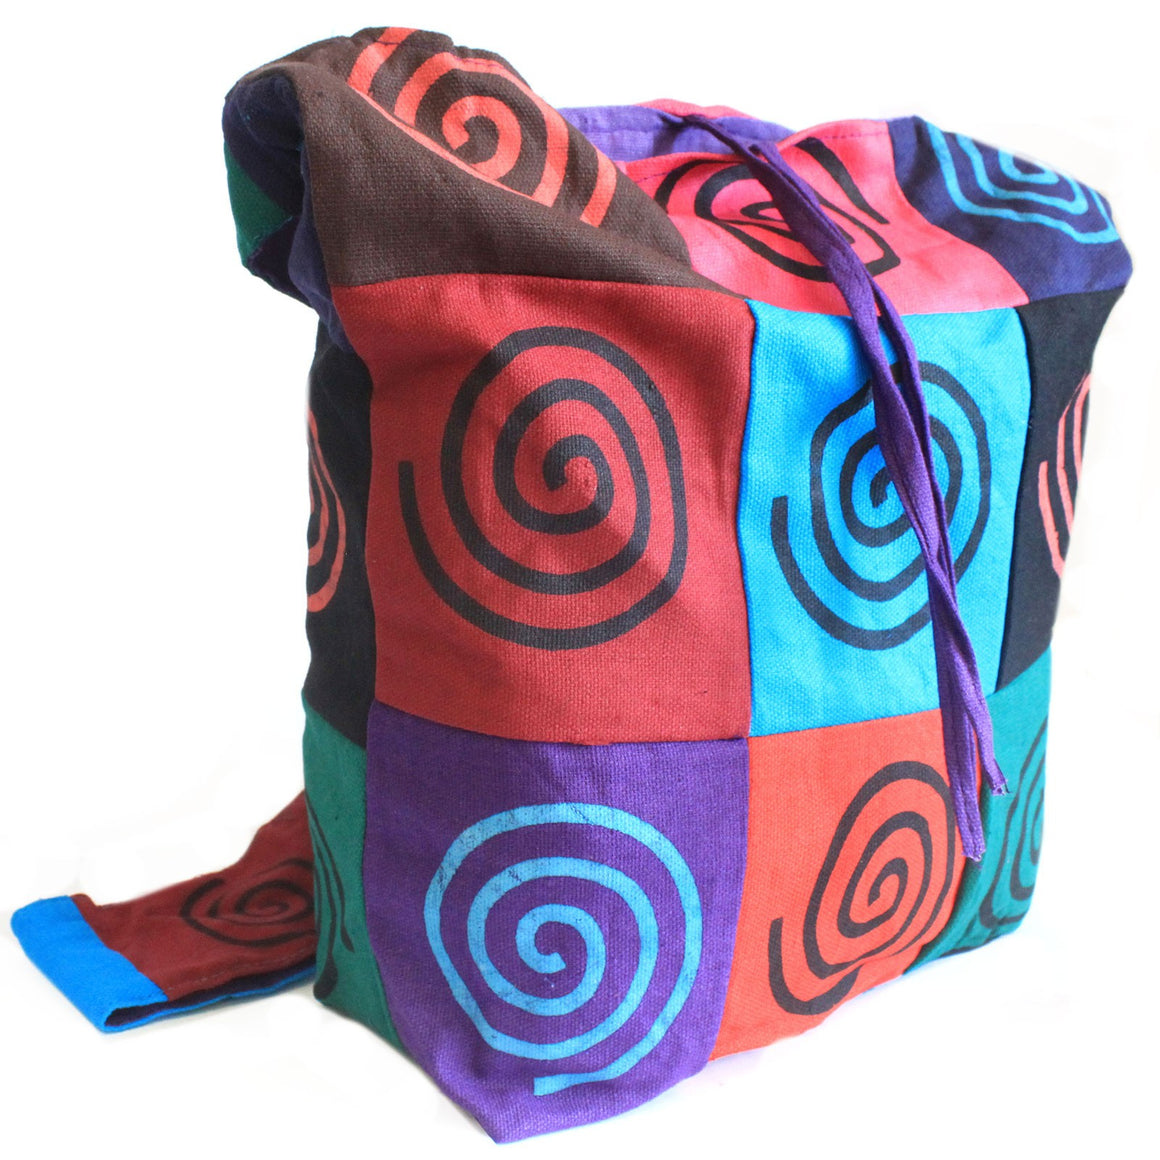 Bags, Cotton Patch Sling Bags, Ethnic Bags, Gift, India, Indian, Spiral